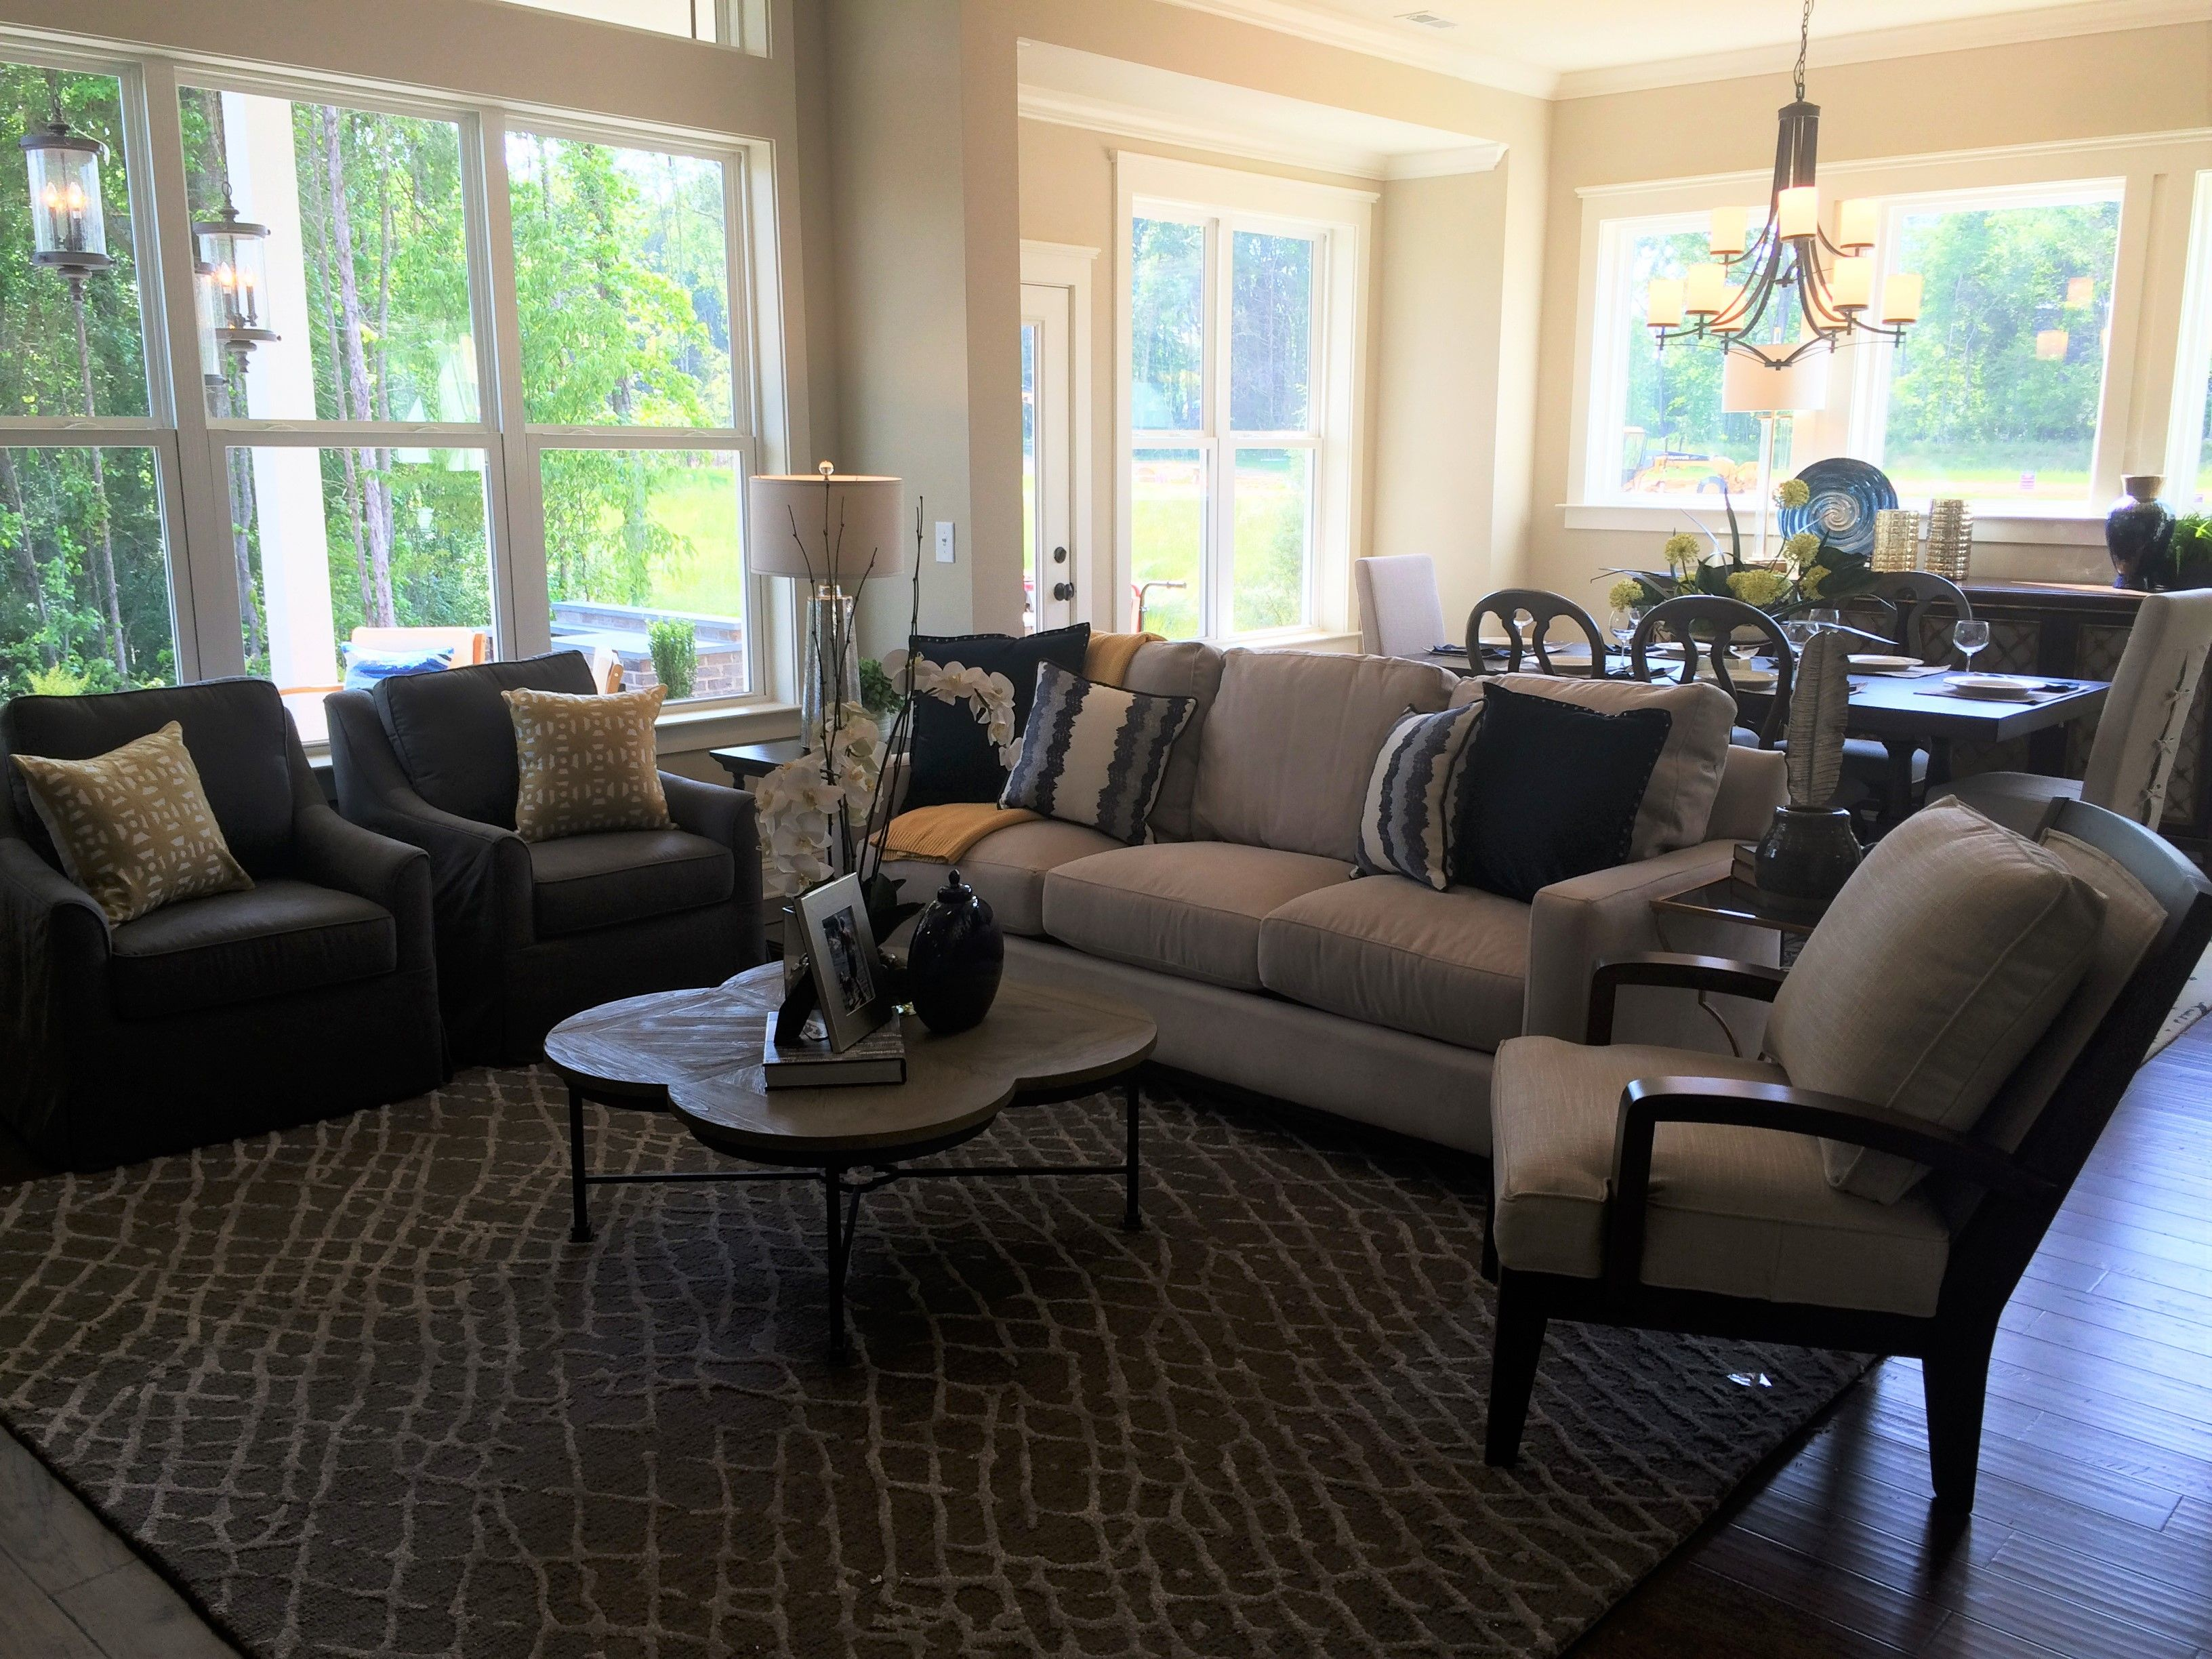 Pin by kai on living rooms interior design home design - Interior design firms charlotte nc ...